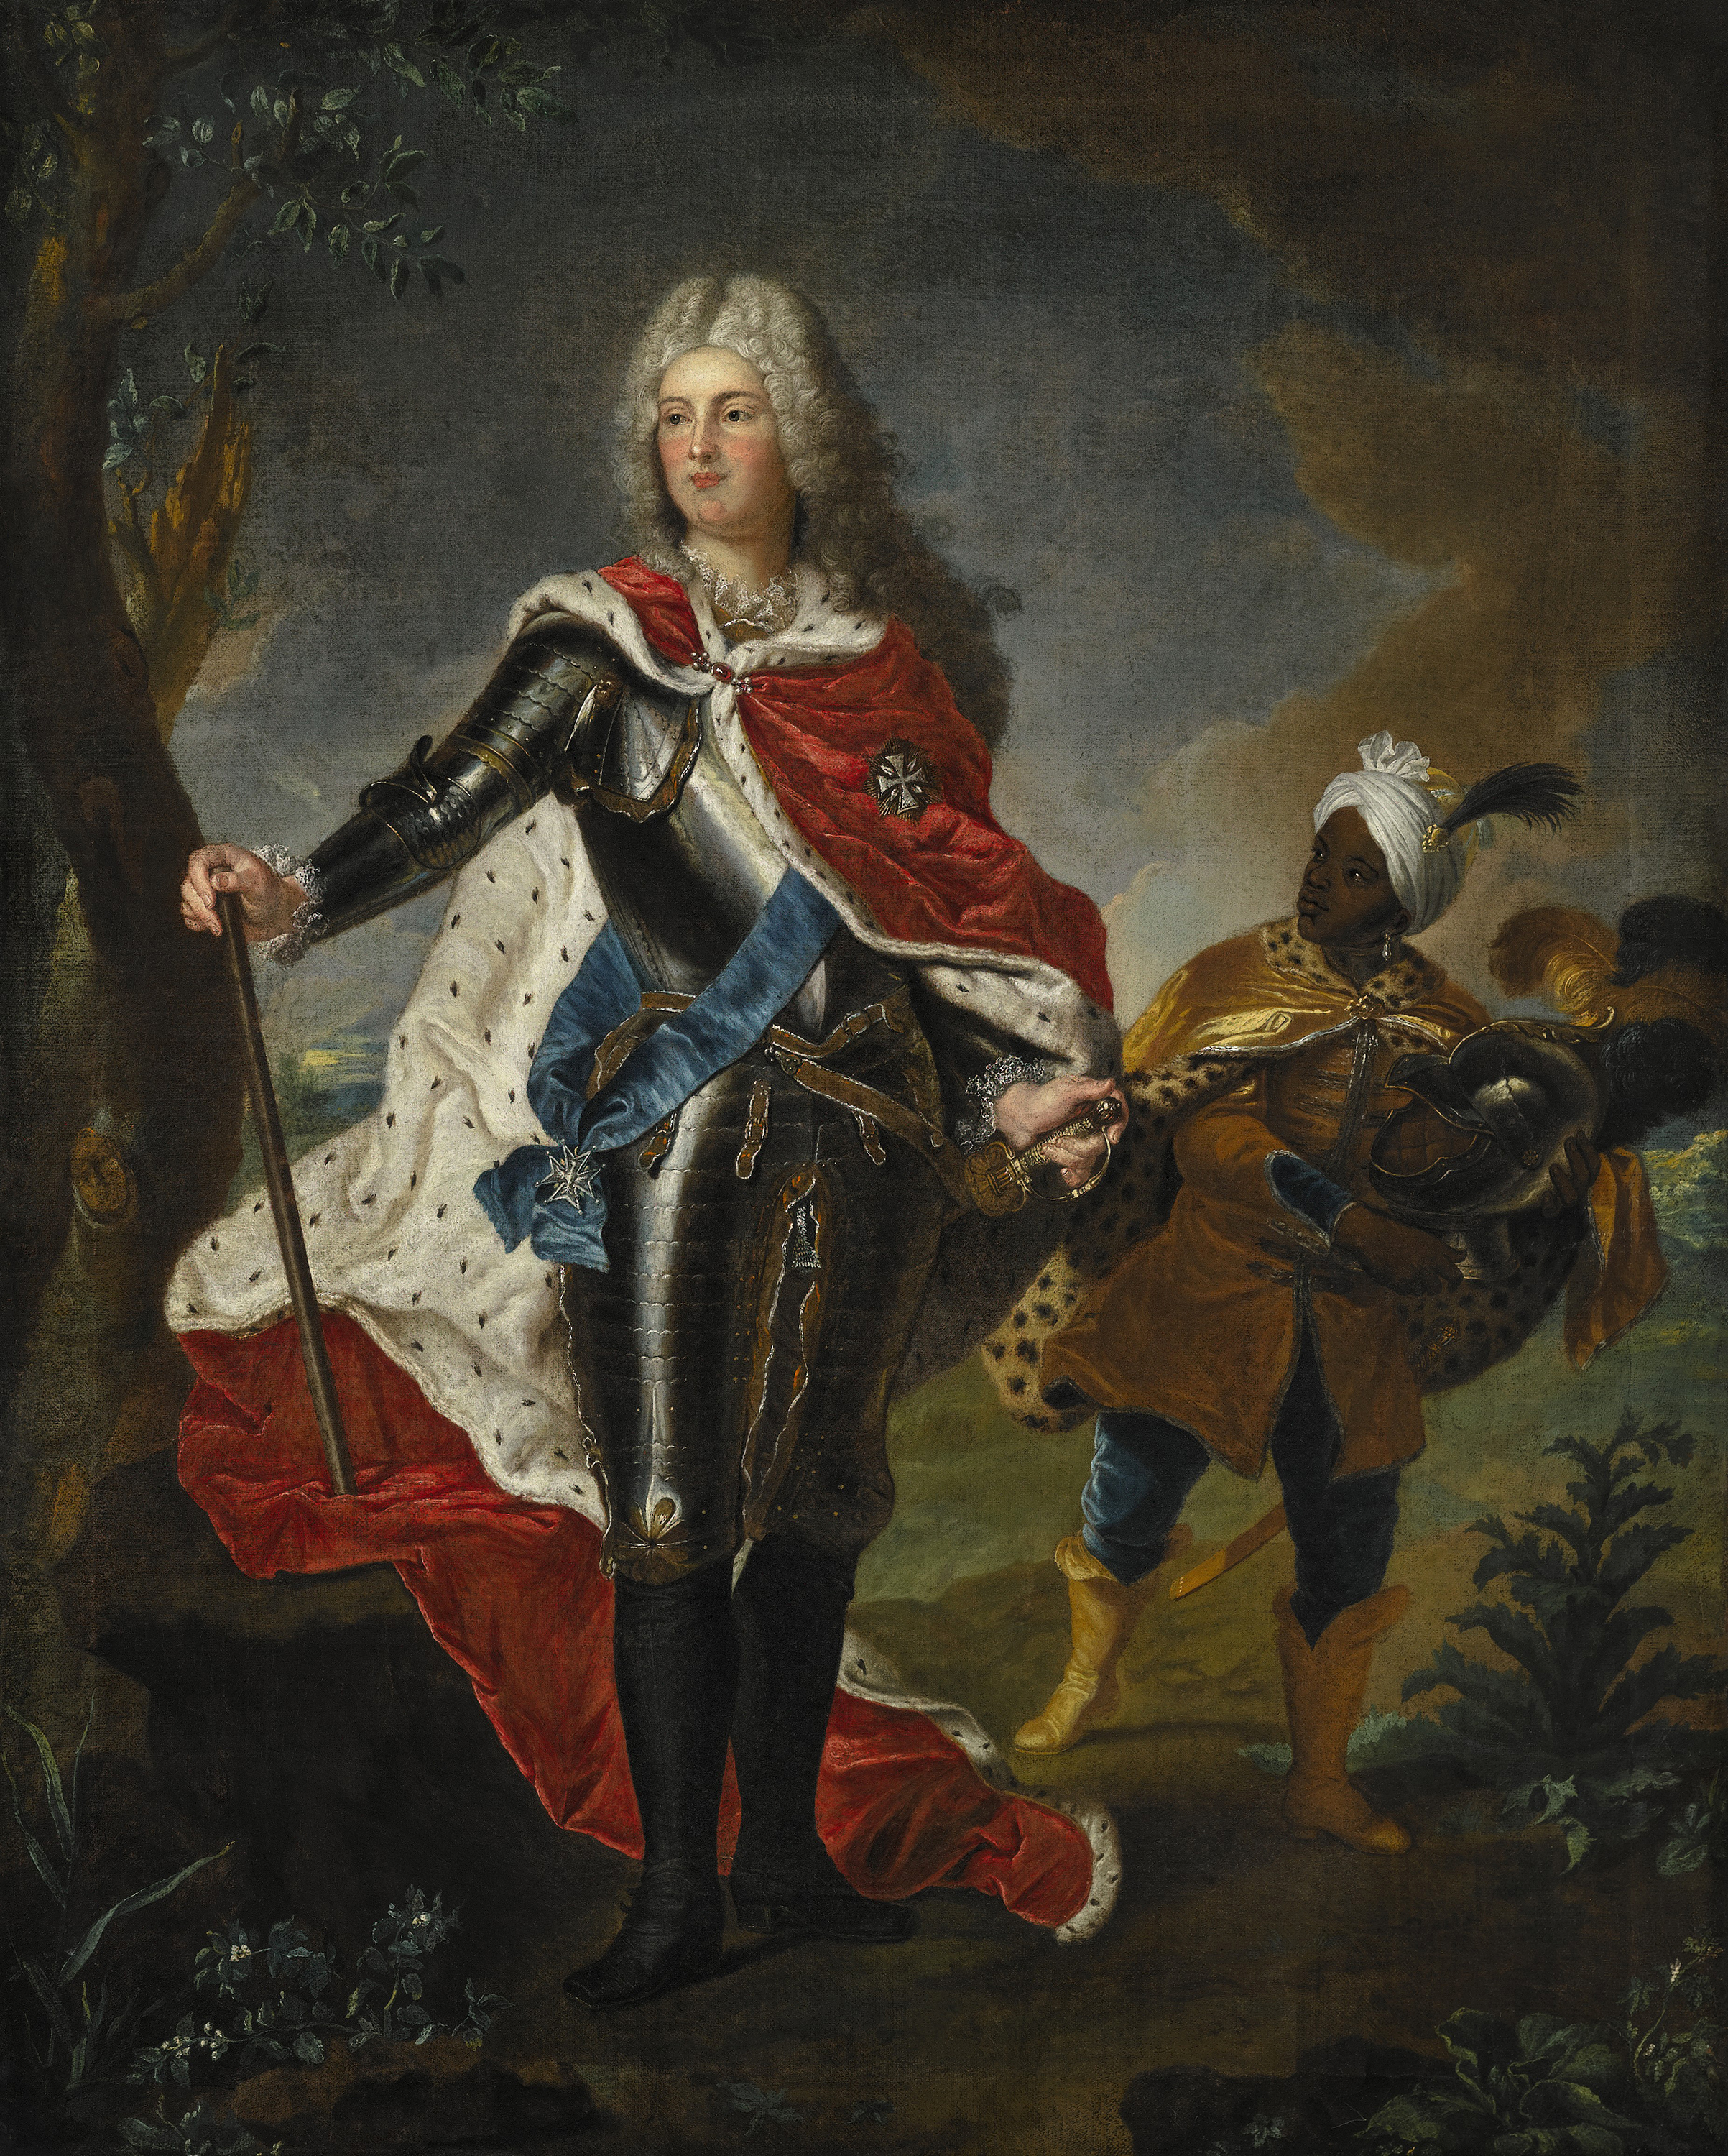 Portrait of Frederick Augustus of Saxony (1696-1763), Crown Prince of Saxony (German: Kurprinz von Sachsen) until 1733; Elector of Saxony (Frederick Augustus II) from 1733 to 1763; King of Poland and Grand Duke of Lithuania (Augustus III) from 1734 to 1763 | Portraits of Kings